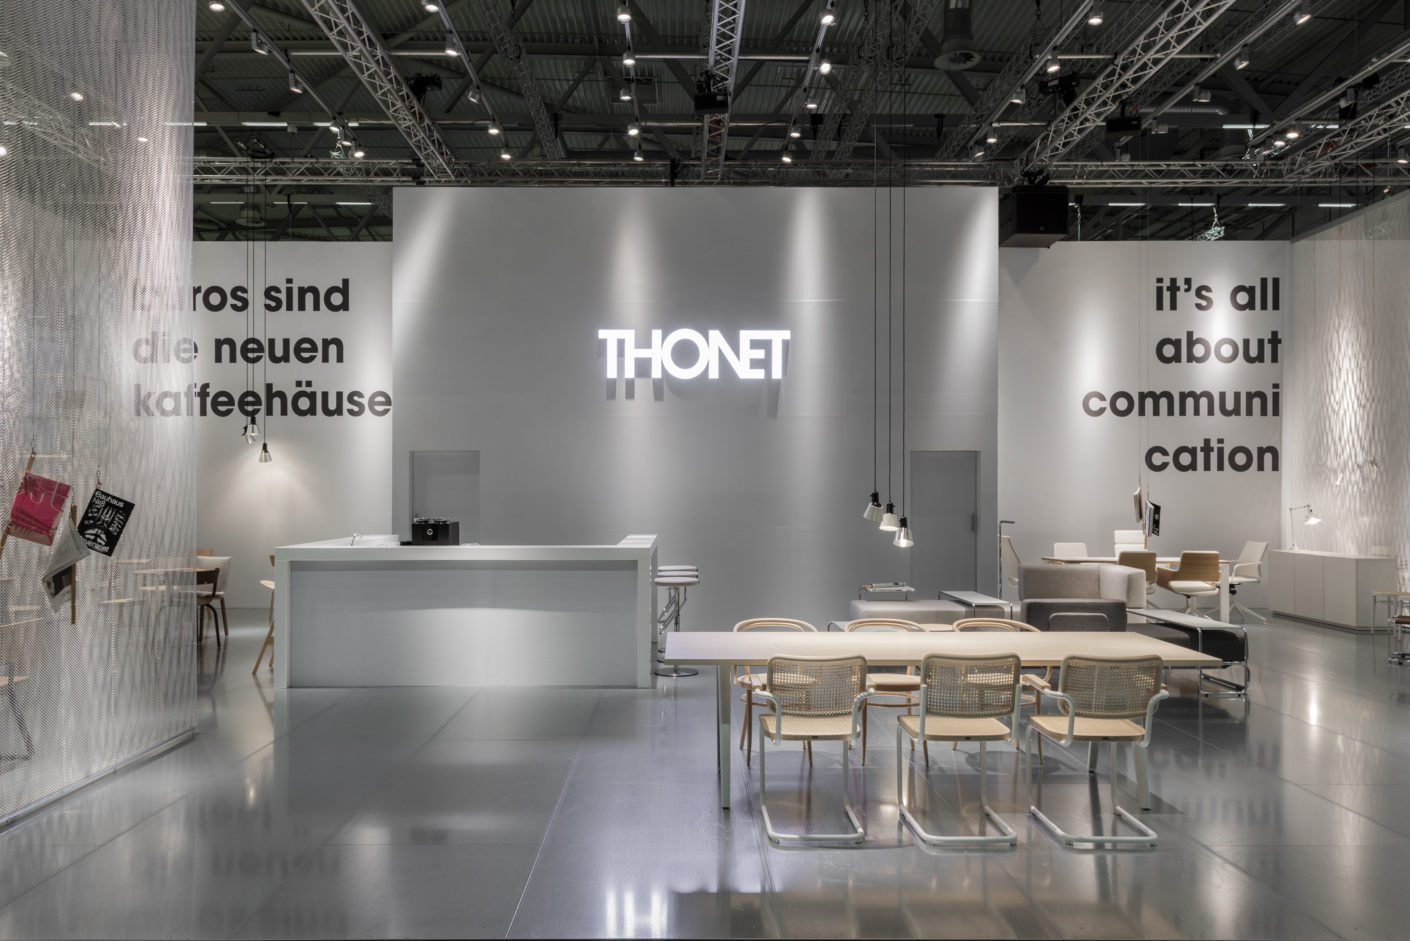 Metal surfaces were an important design element of the Thonet booth designed by Ply Studio.